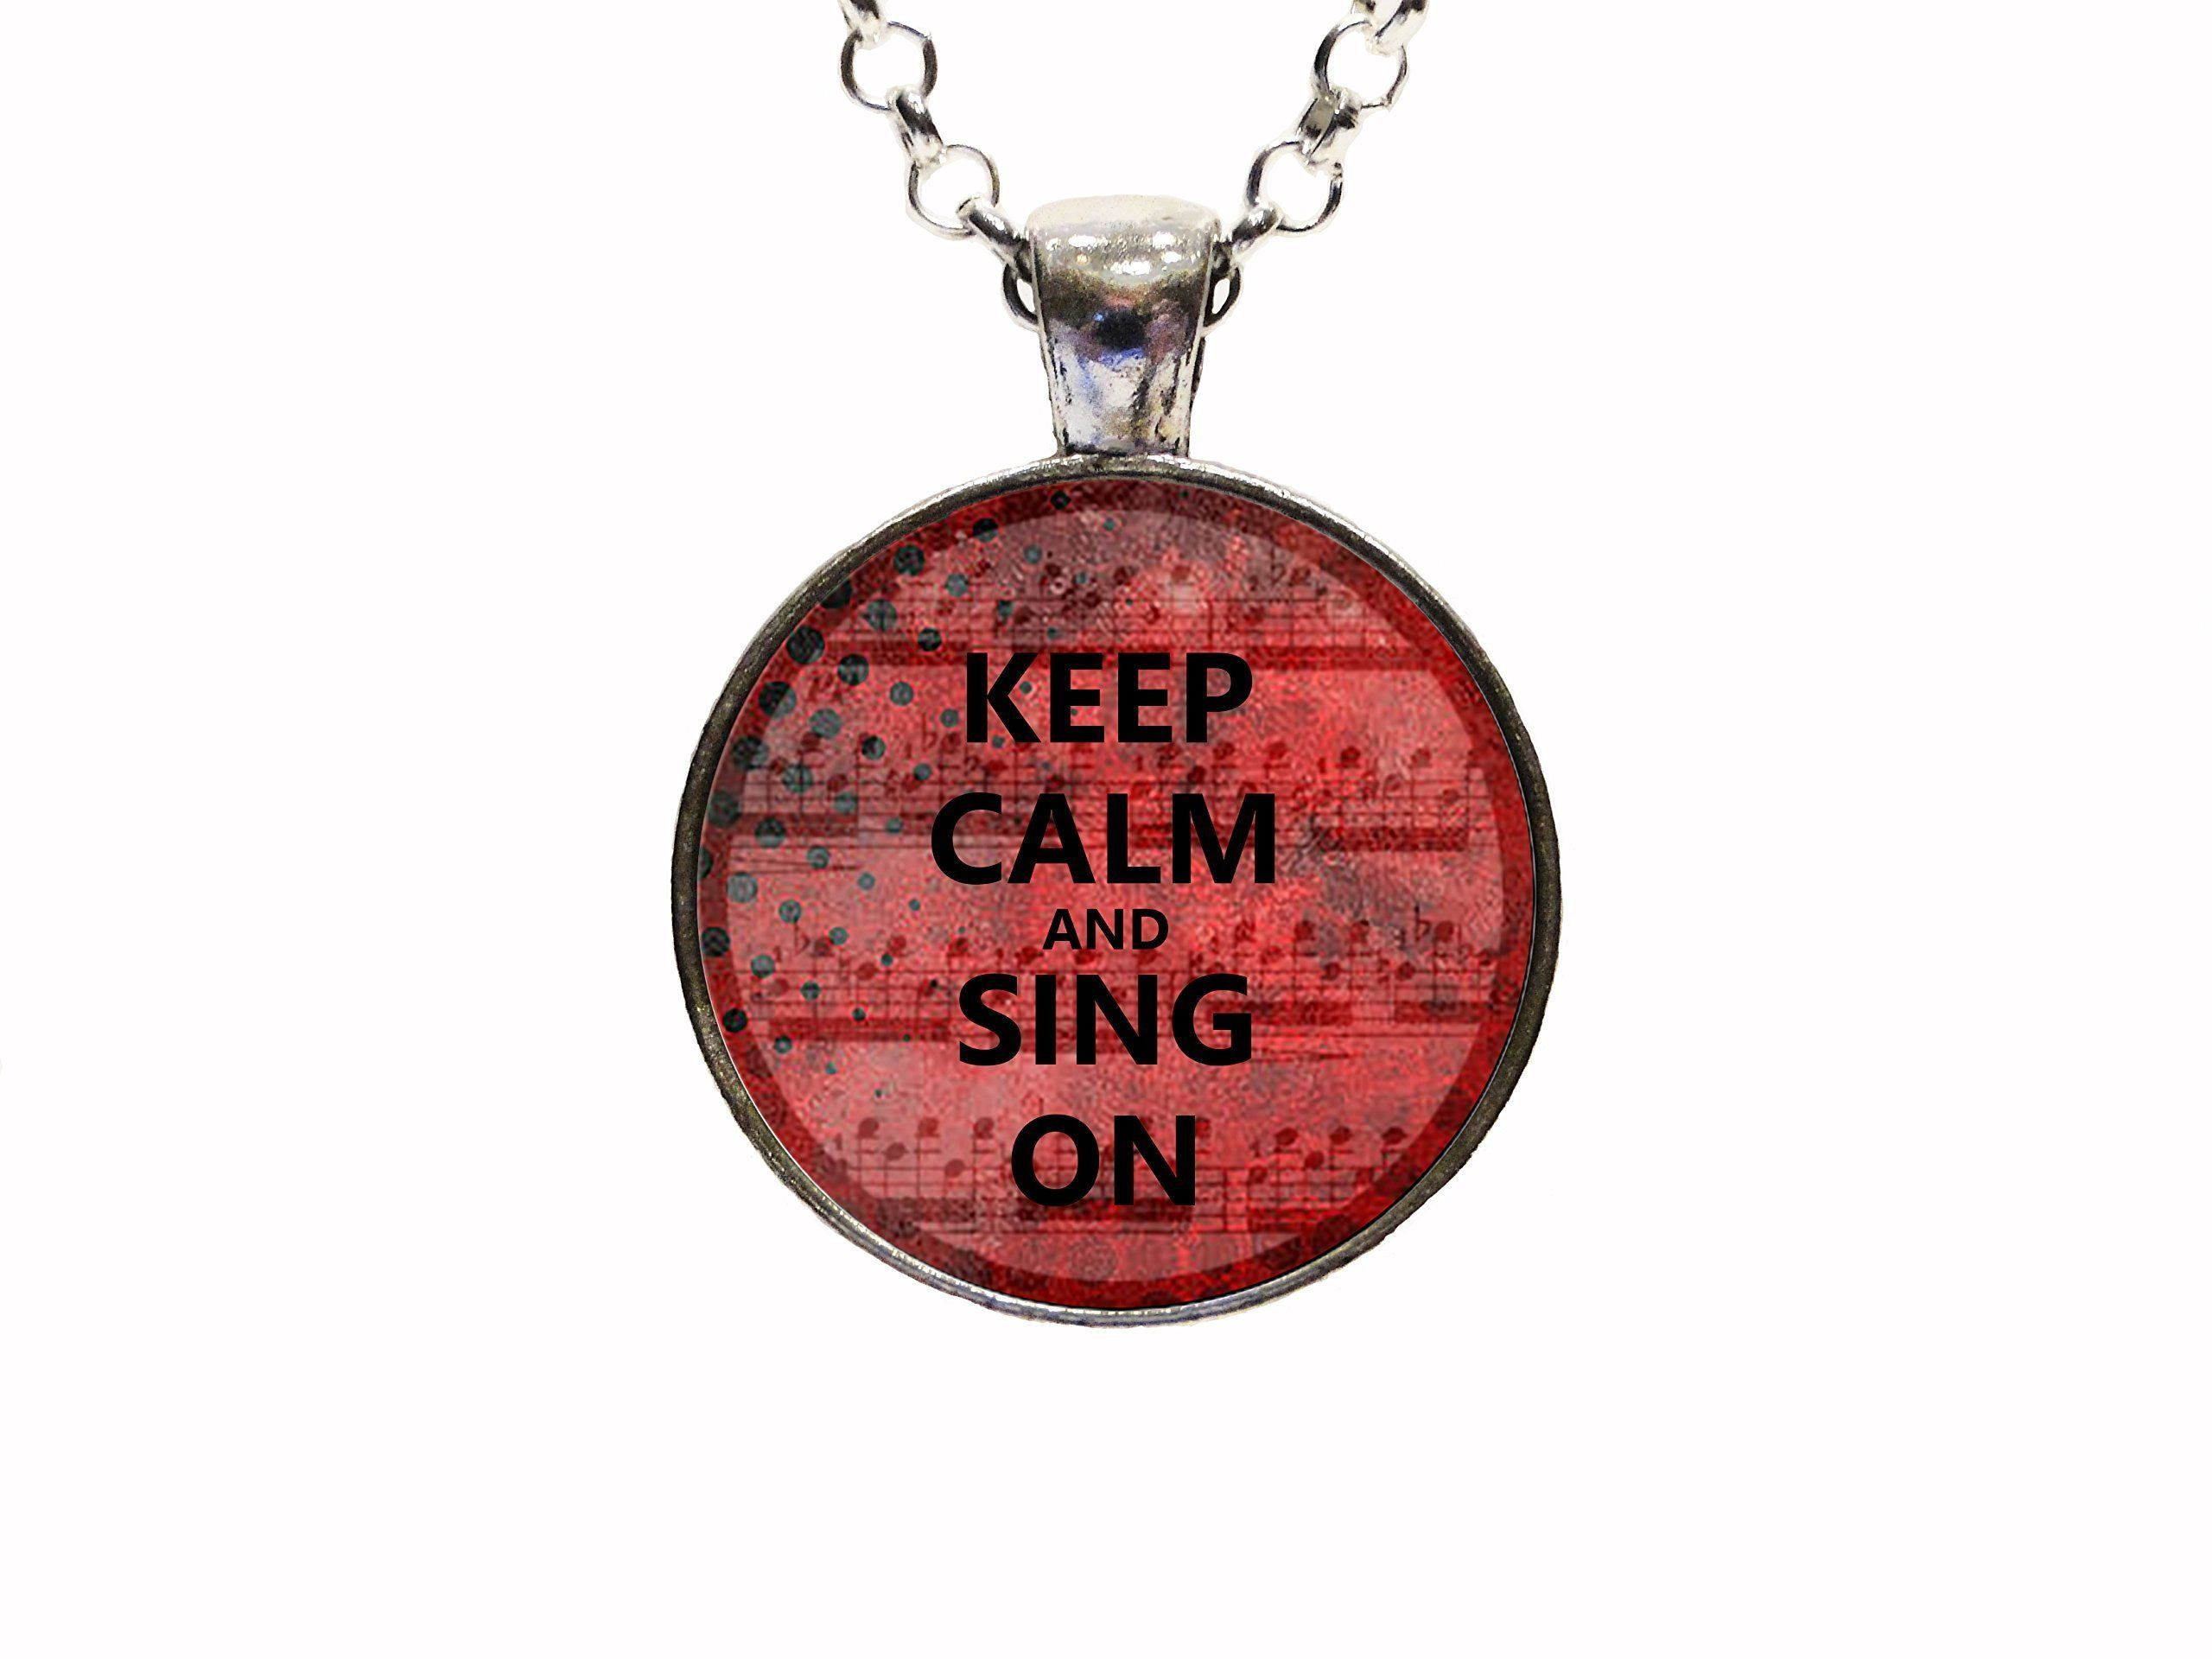 Digital Art Quotes Keep Calm and Sing On Pendant Necklace Or Keychain Urban Teen Music Student Teacher Gift Christmas. With this listing you will receive a glass dome pendant and necklace with lobster clasp in organza bag shipped via U.S. mail with tracking number. Package is ready for gift giving. Matching key chains are also available with this design. For key chain choice select your pendant choice and then under necklace options you will select key chain. Four Pendant Choices…